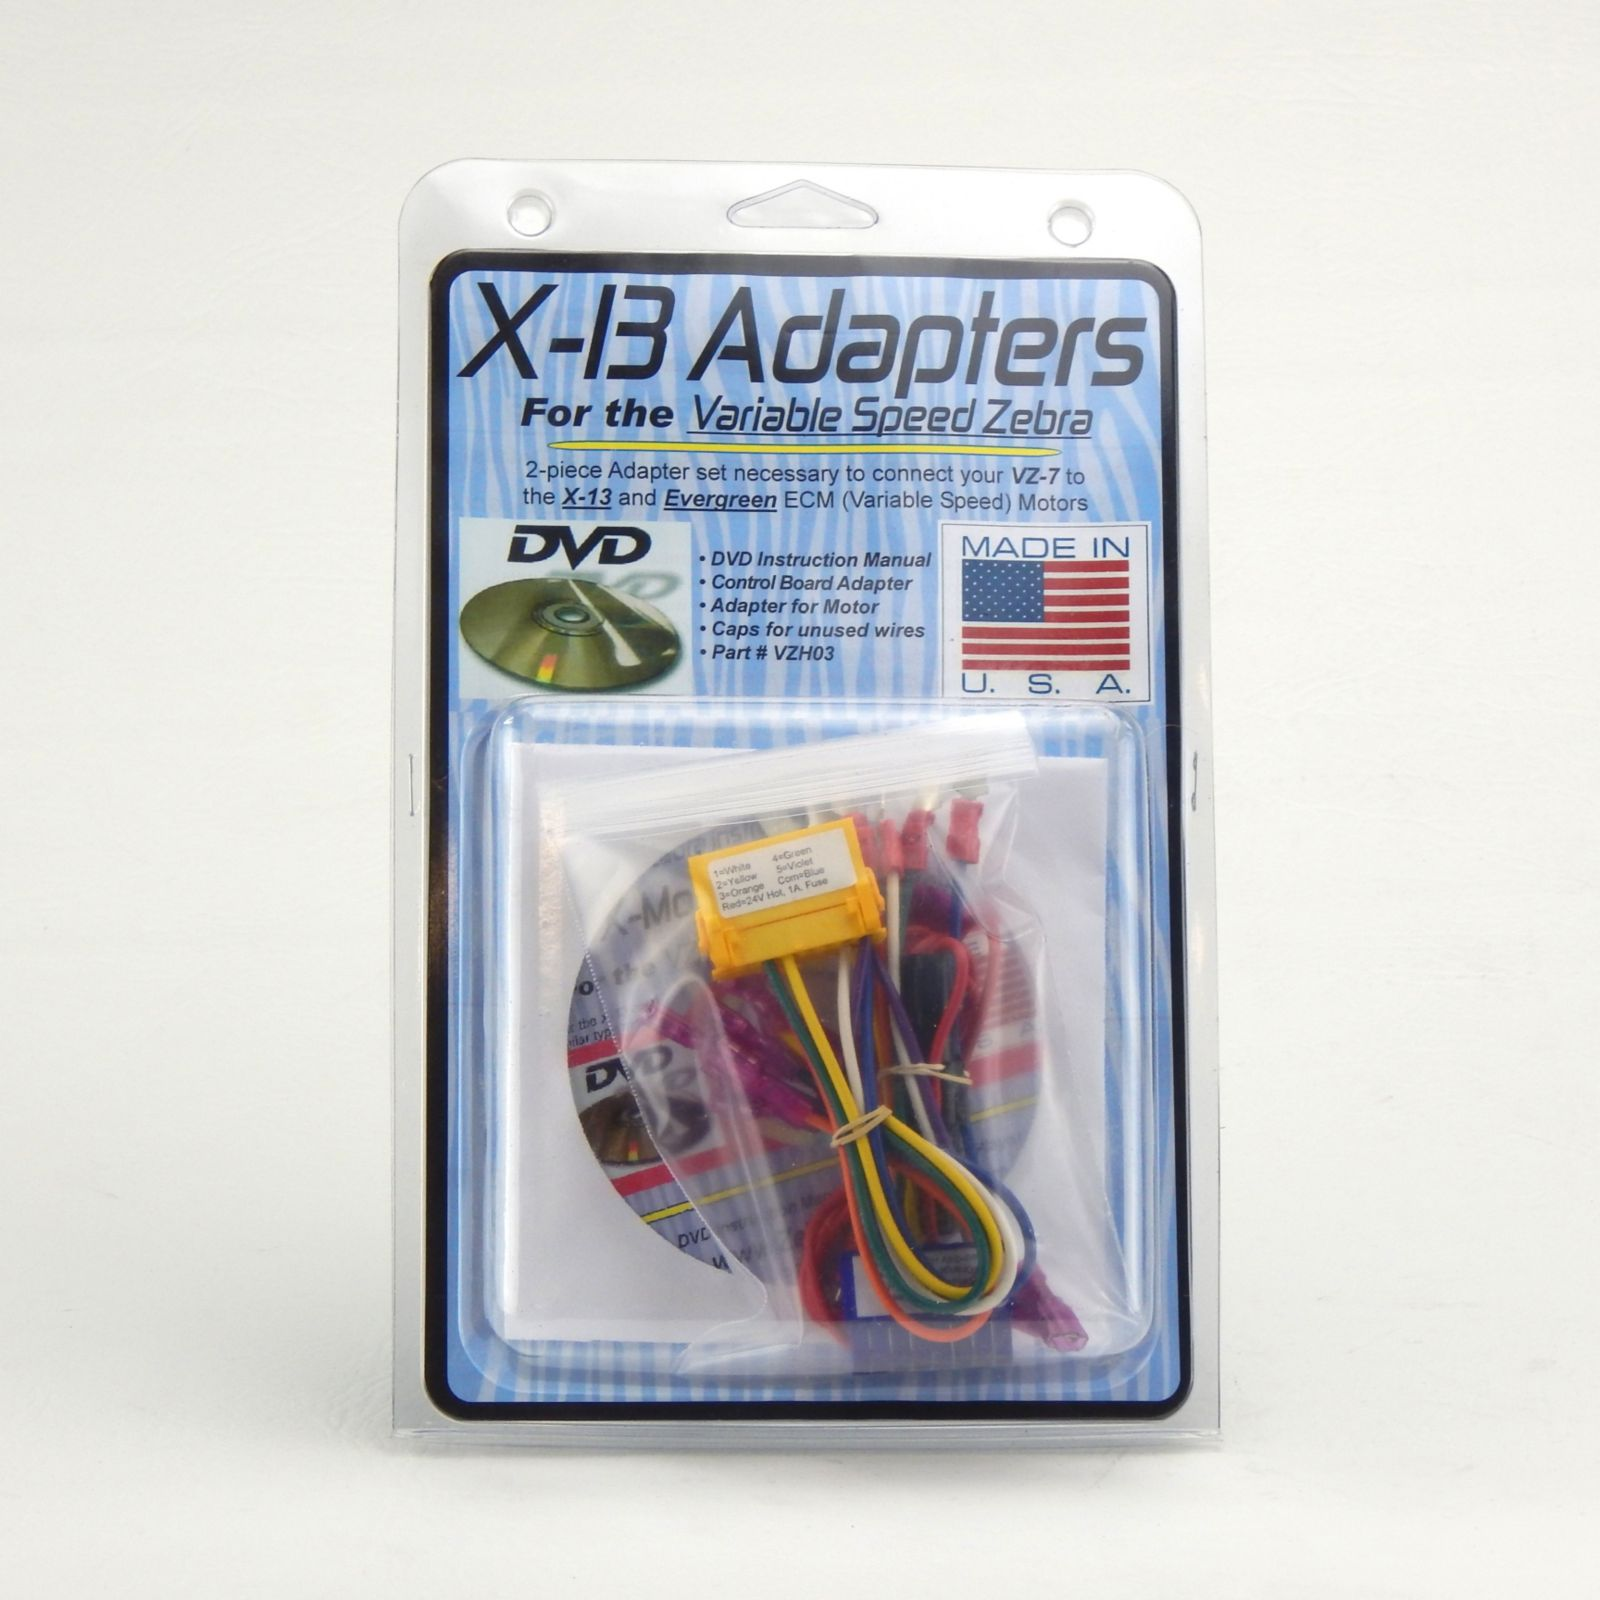 Zebra VZH03 - X-13 and Evergreen Motor Adapters (with DVD) for VZ-7 Tester